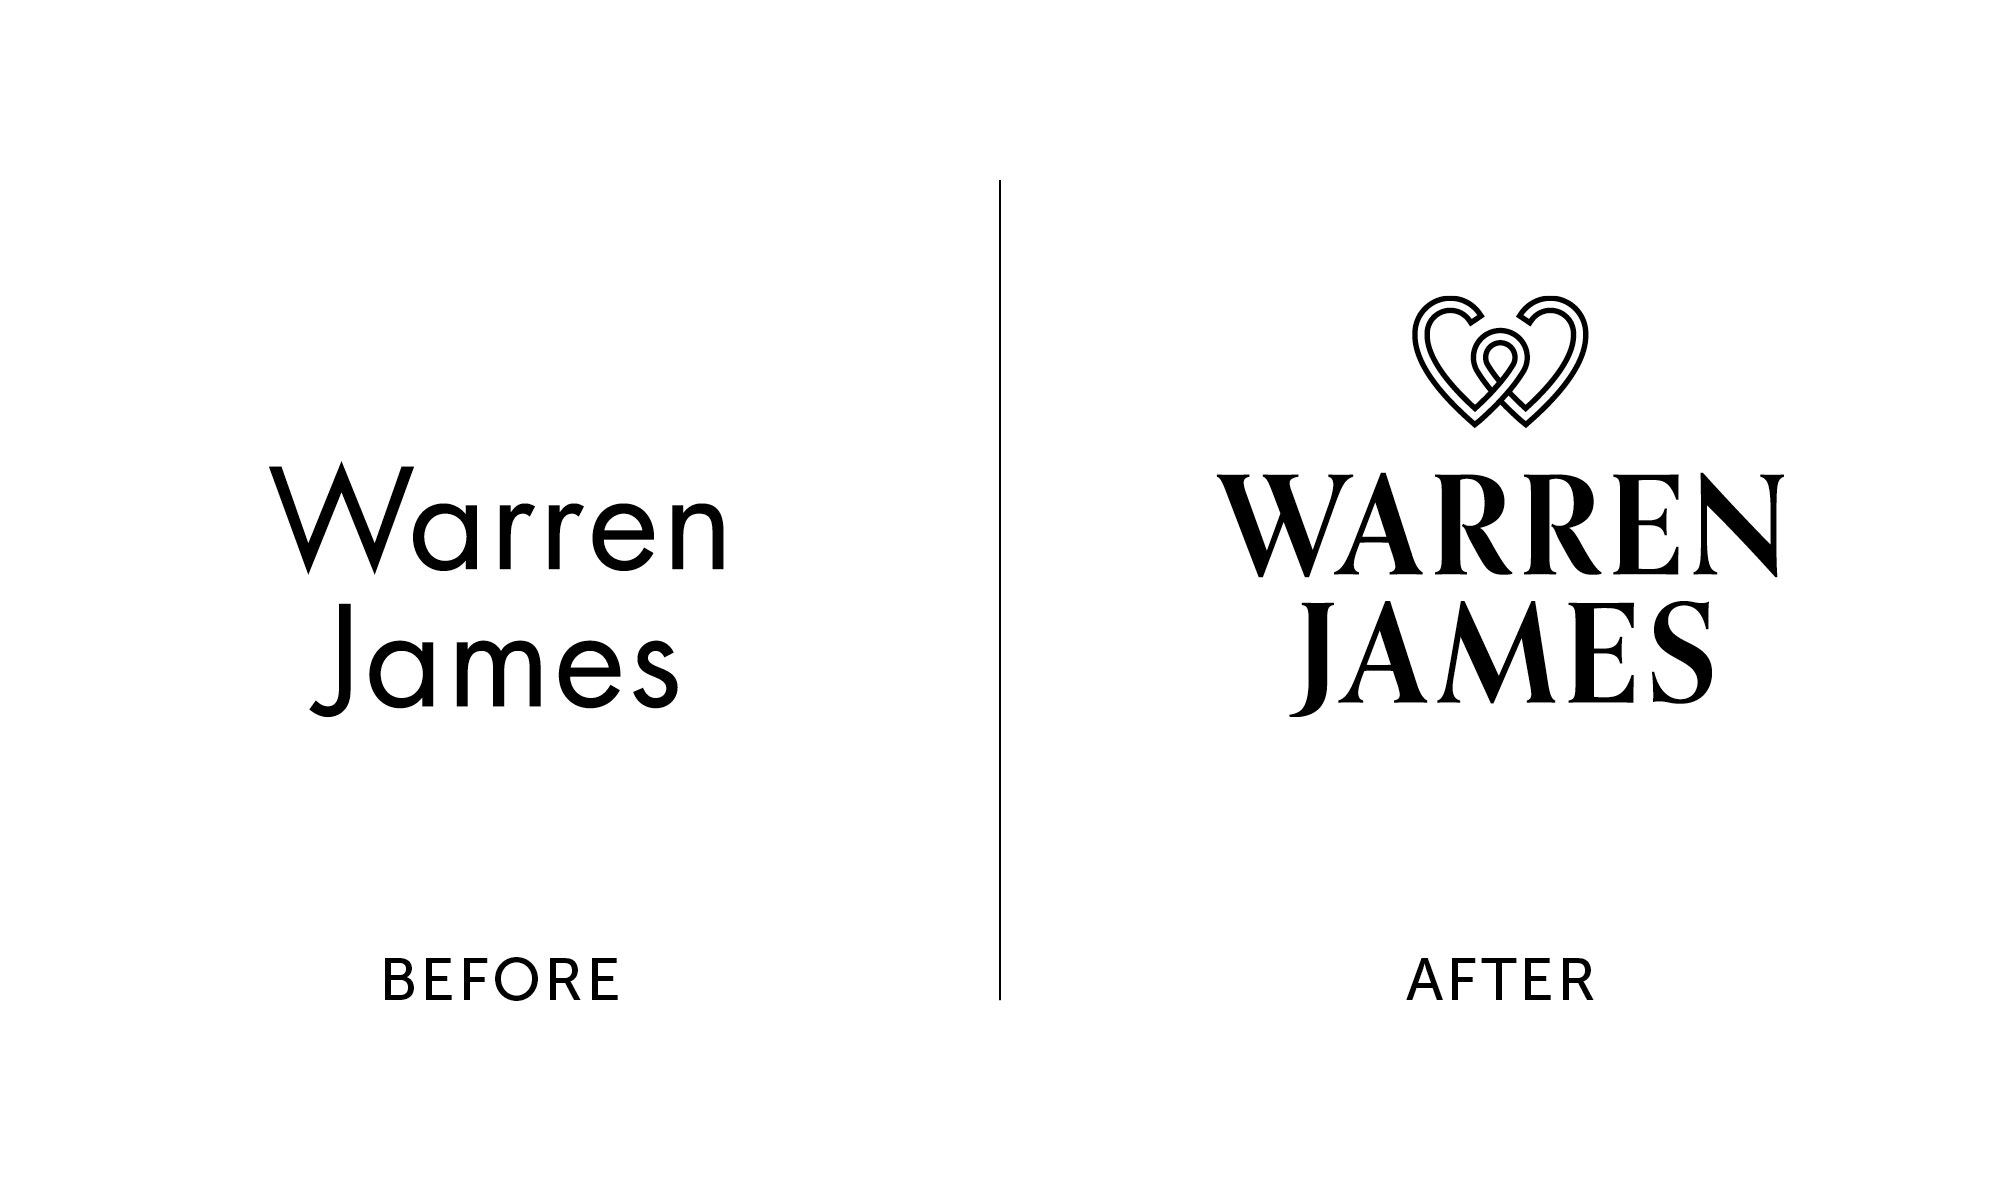 Warren_James_Case_Study2.jpg